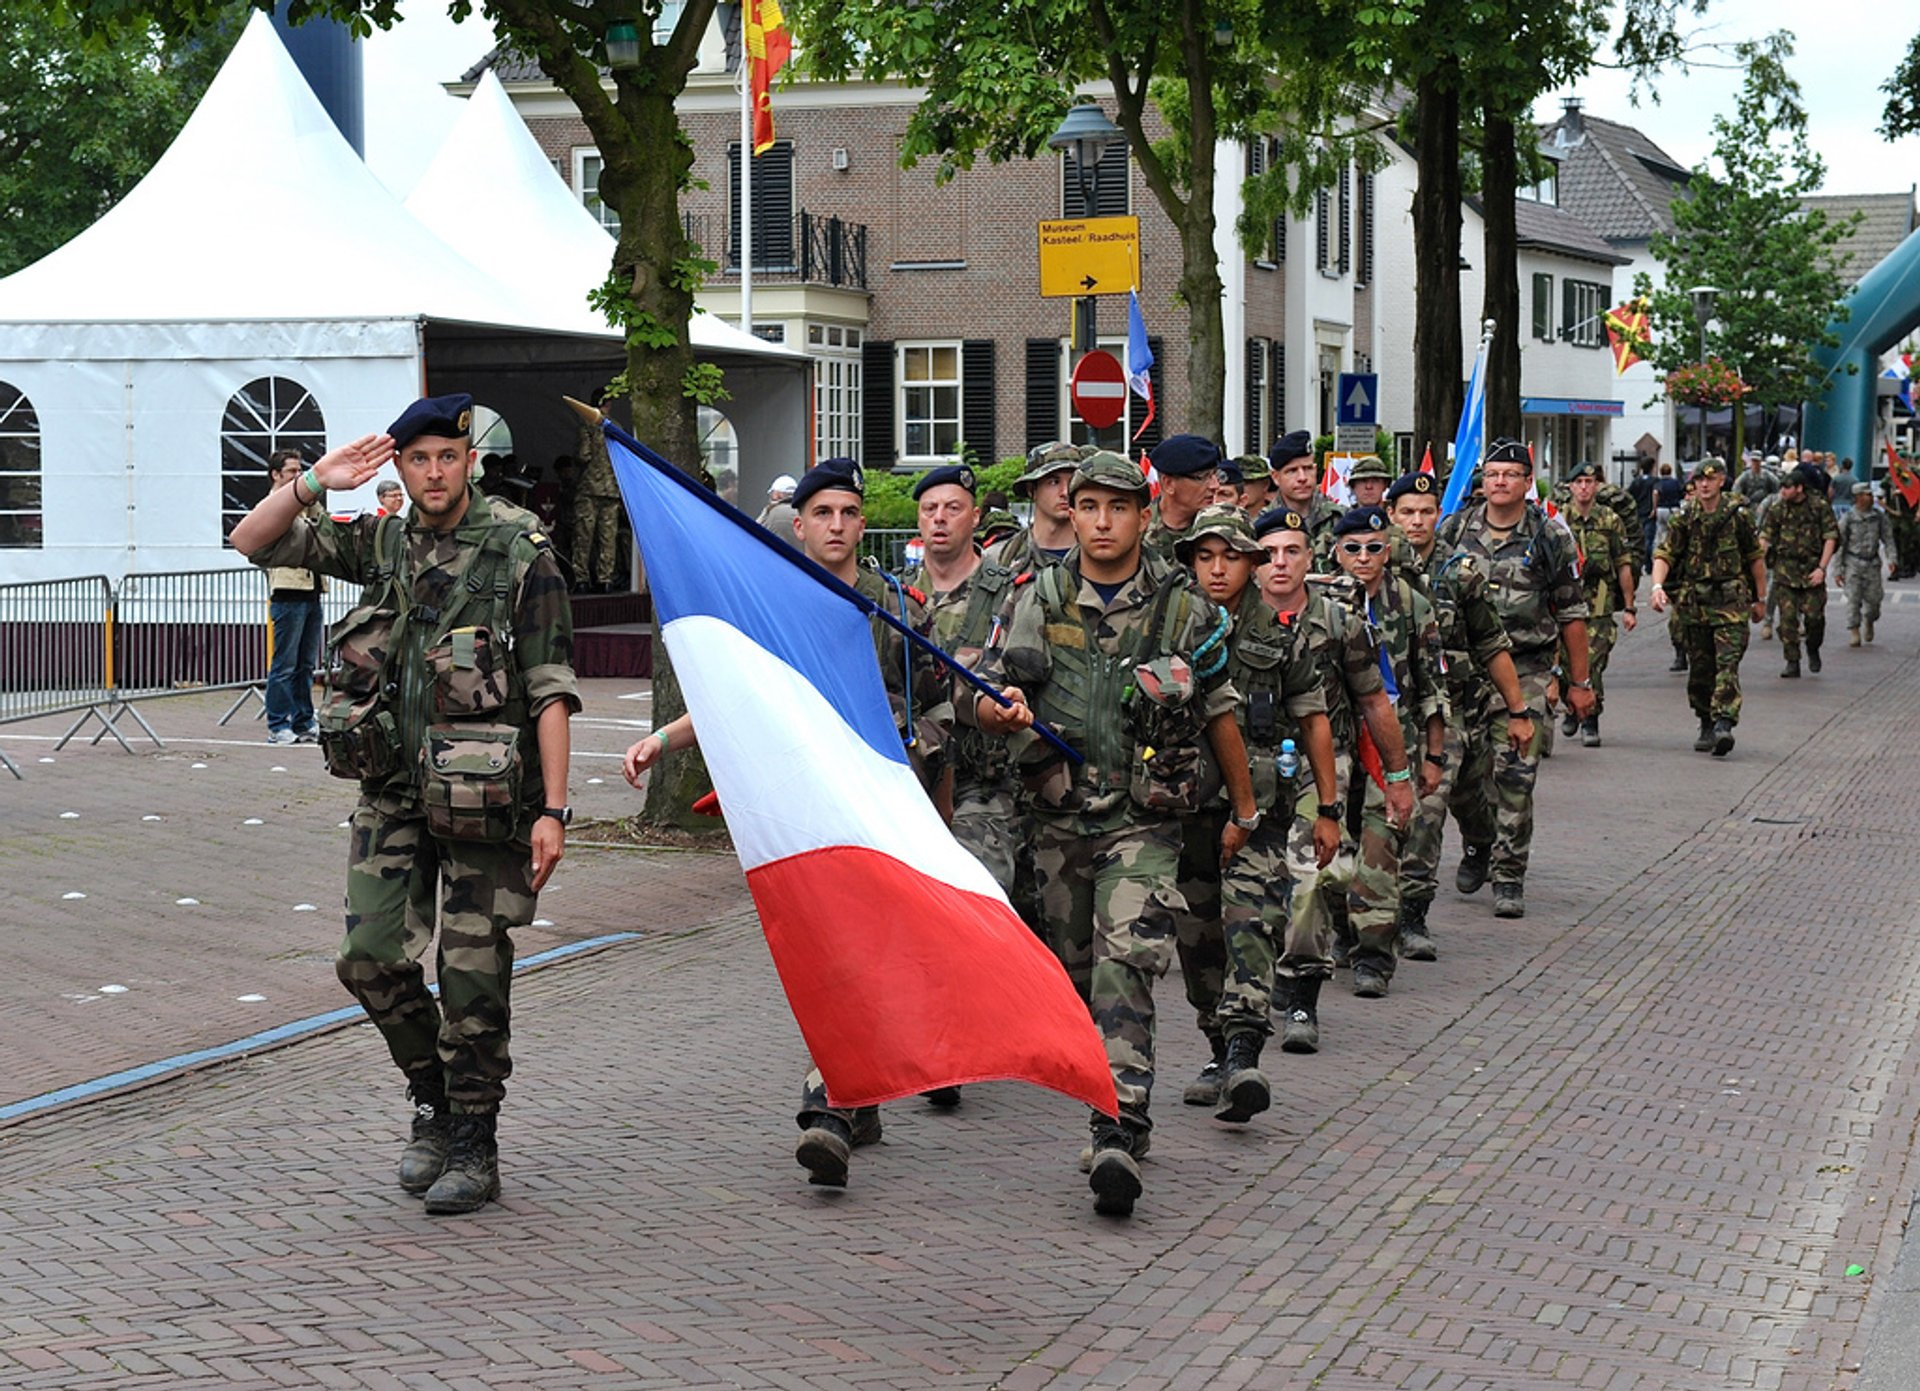 The Four Days Marches in The Netherlands 2020 - Best Time